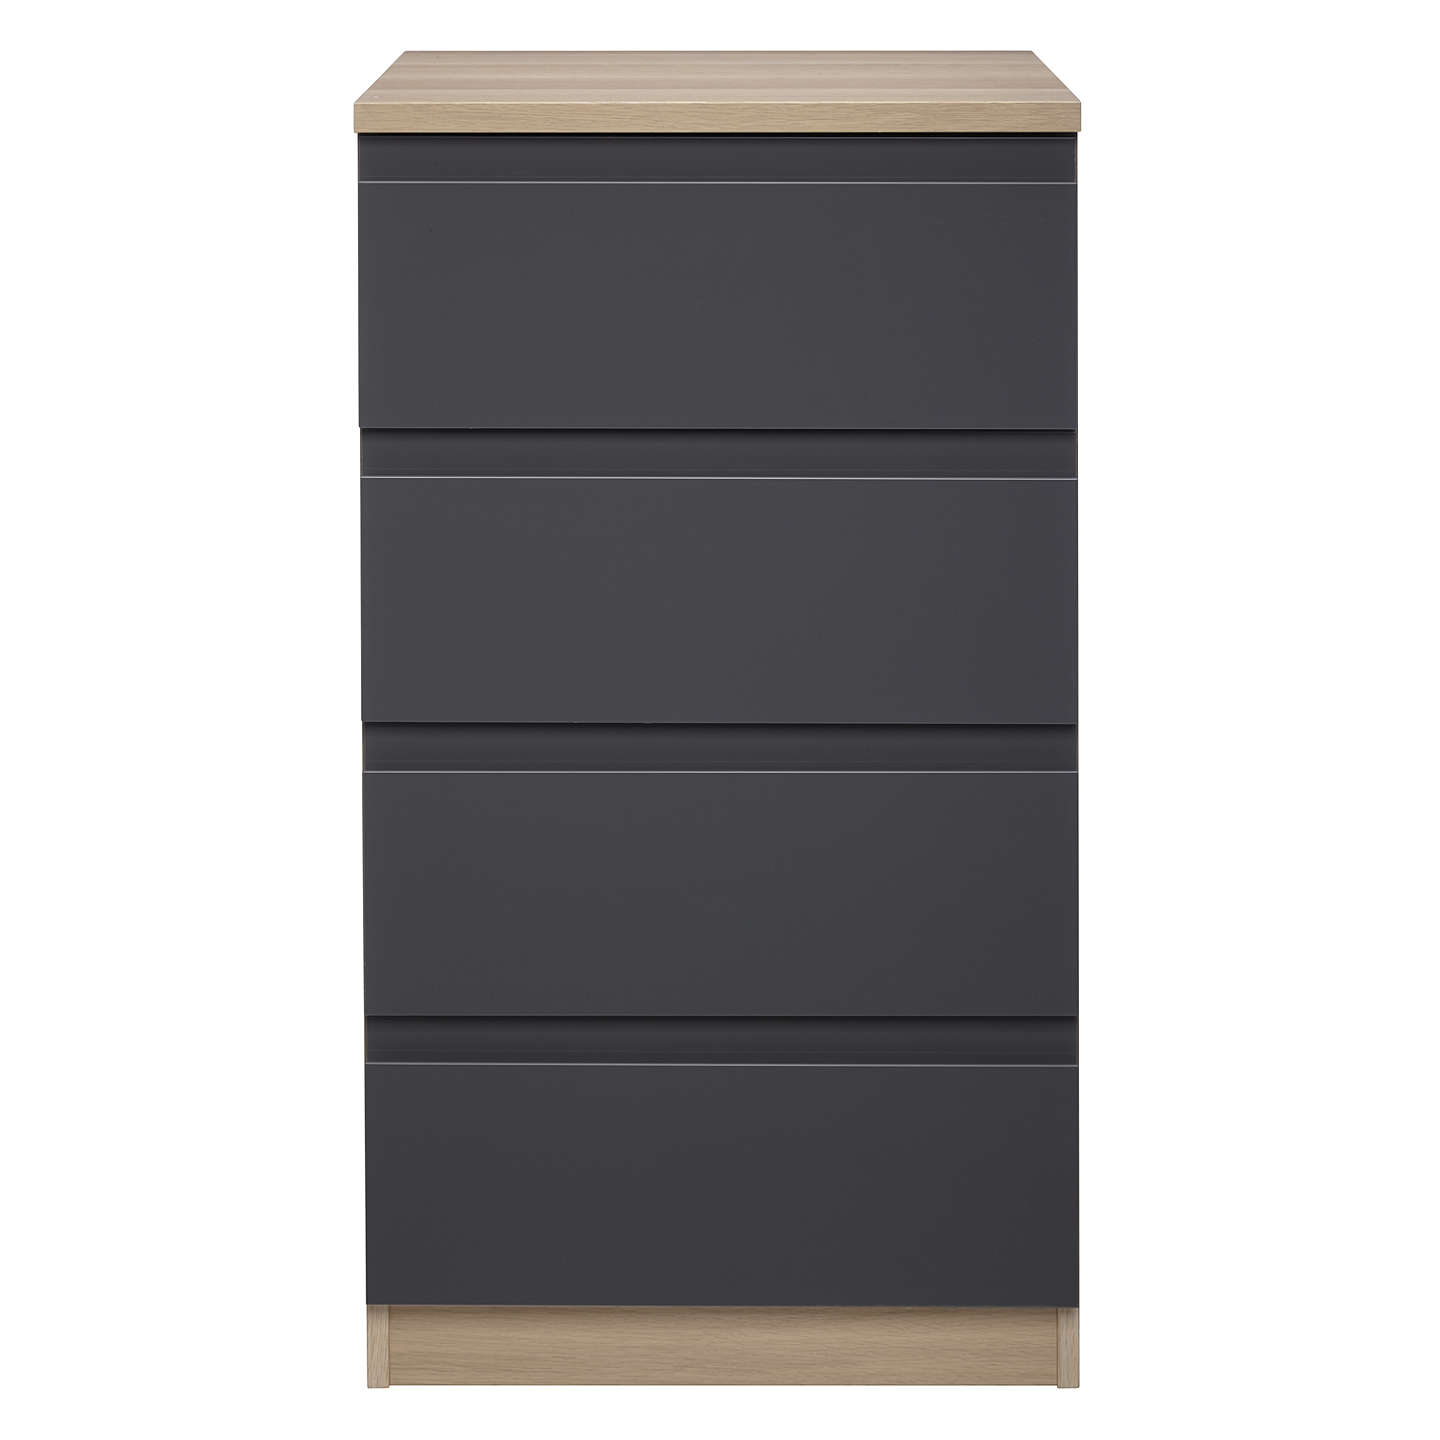 BuyHouse by John Lewis Mix it Narrow 4 Drawer Chest, Gloss House Steel/Natural Oak Online at johnlewis.com